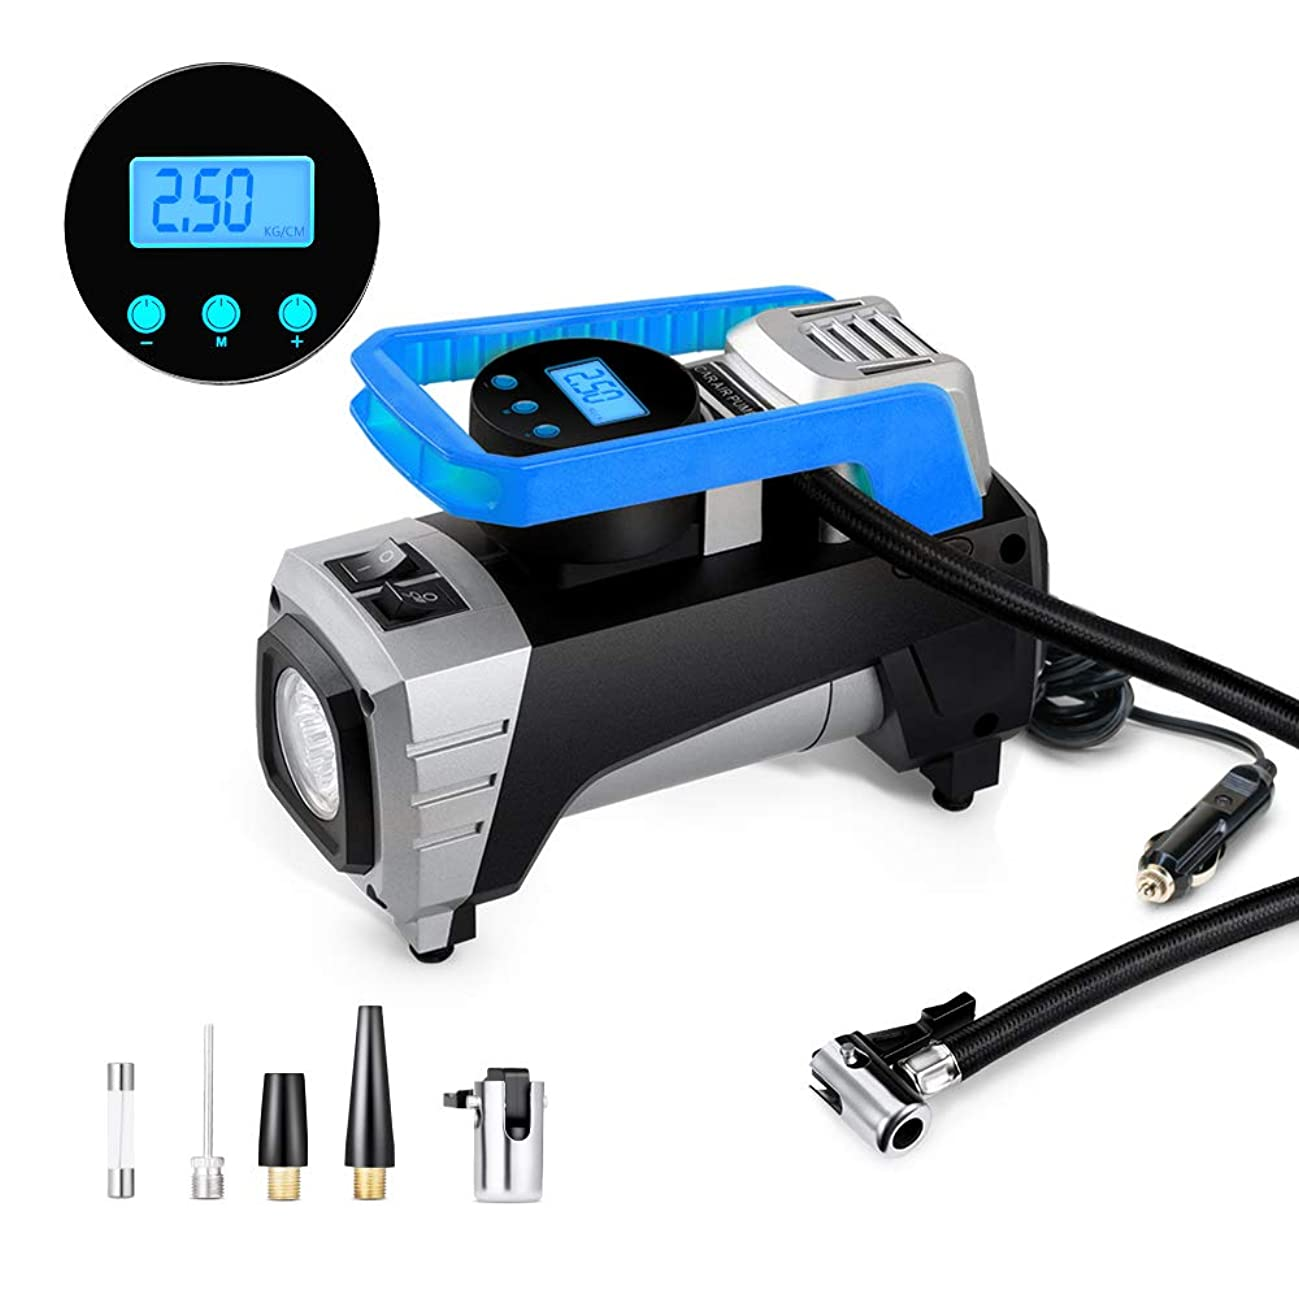 Air Compressor Pump, Yimaler 12V 150 PSI Car Air Pump Digital Tire Inflator with Preset Pressure Auto Shut Off Gauge, Portable Tire Pump for Car, Bikes, Motorcycles, Sport Balls Etc(Newest Blue)